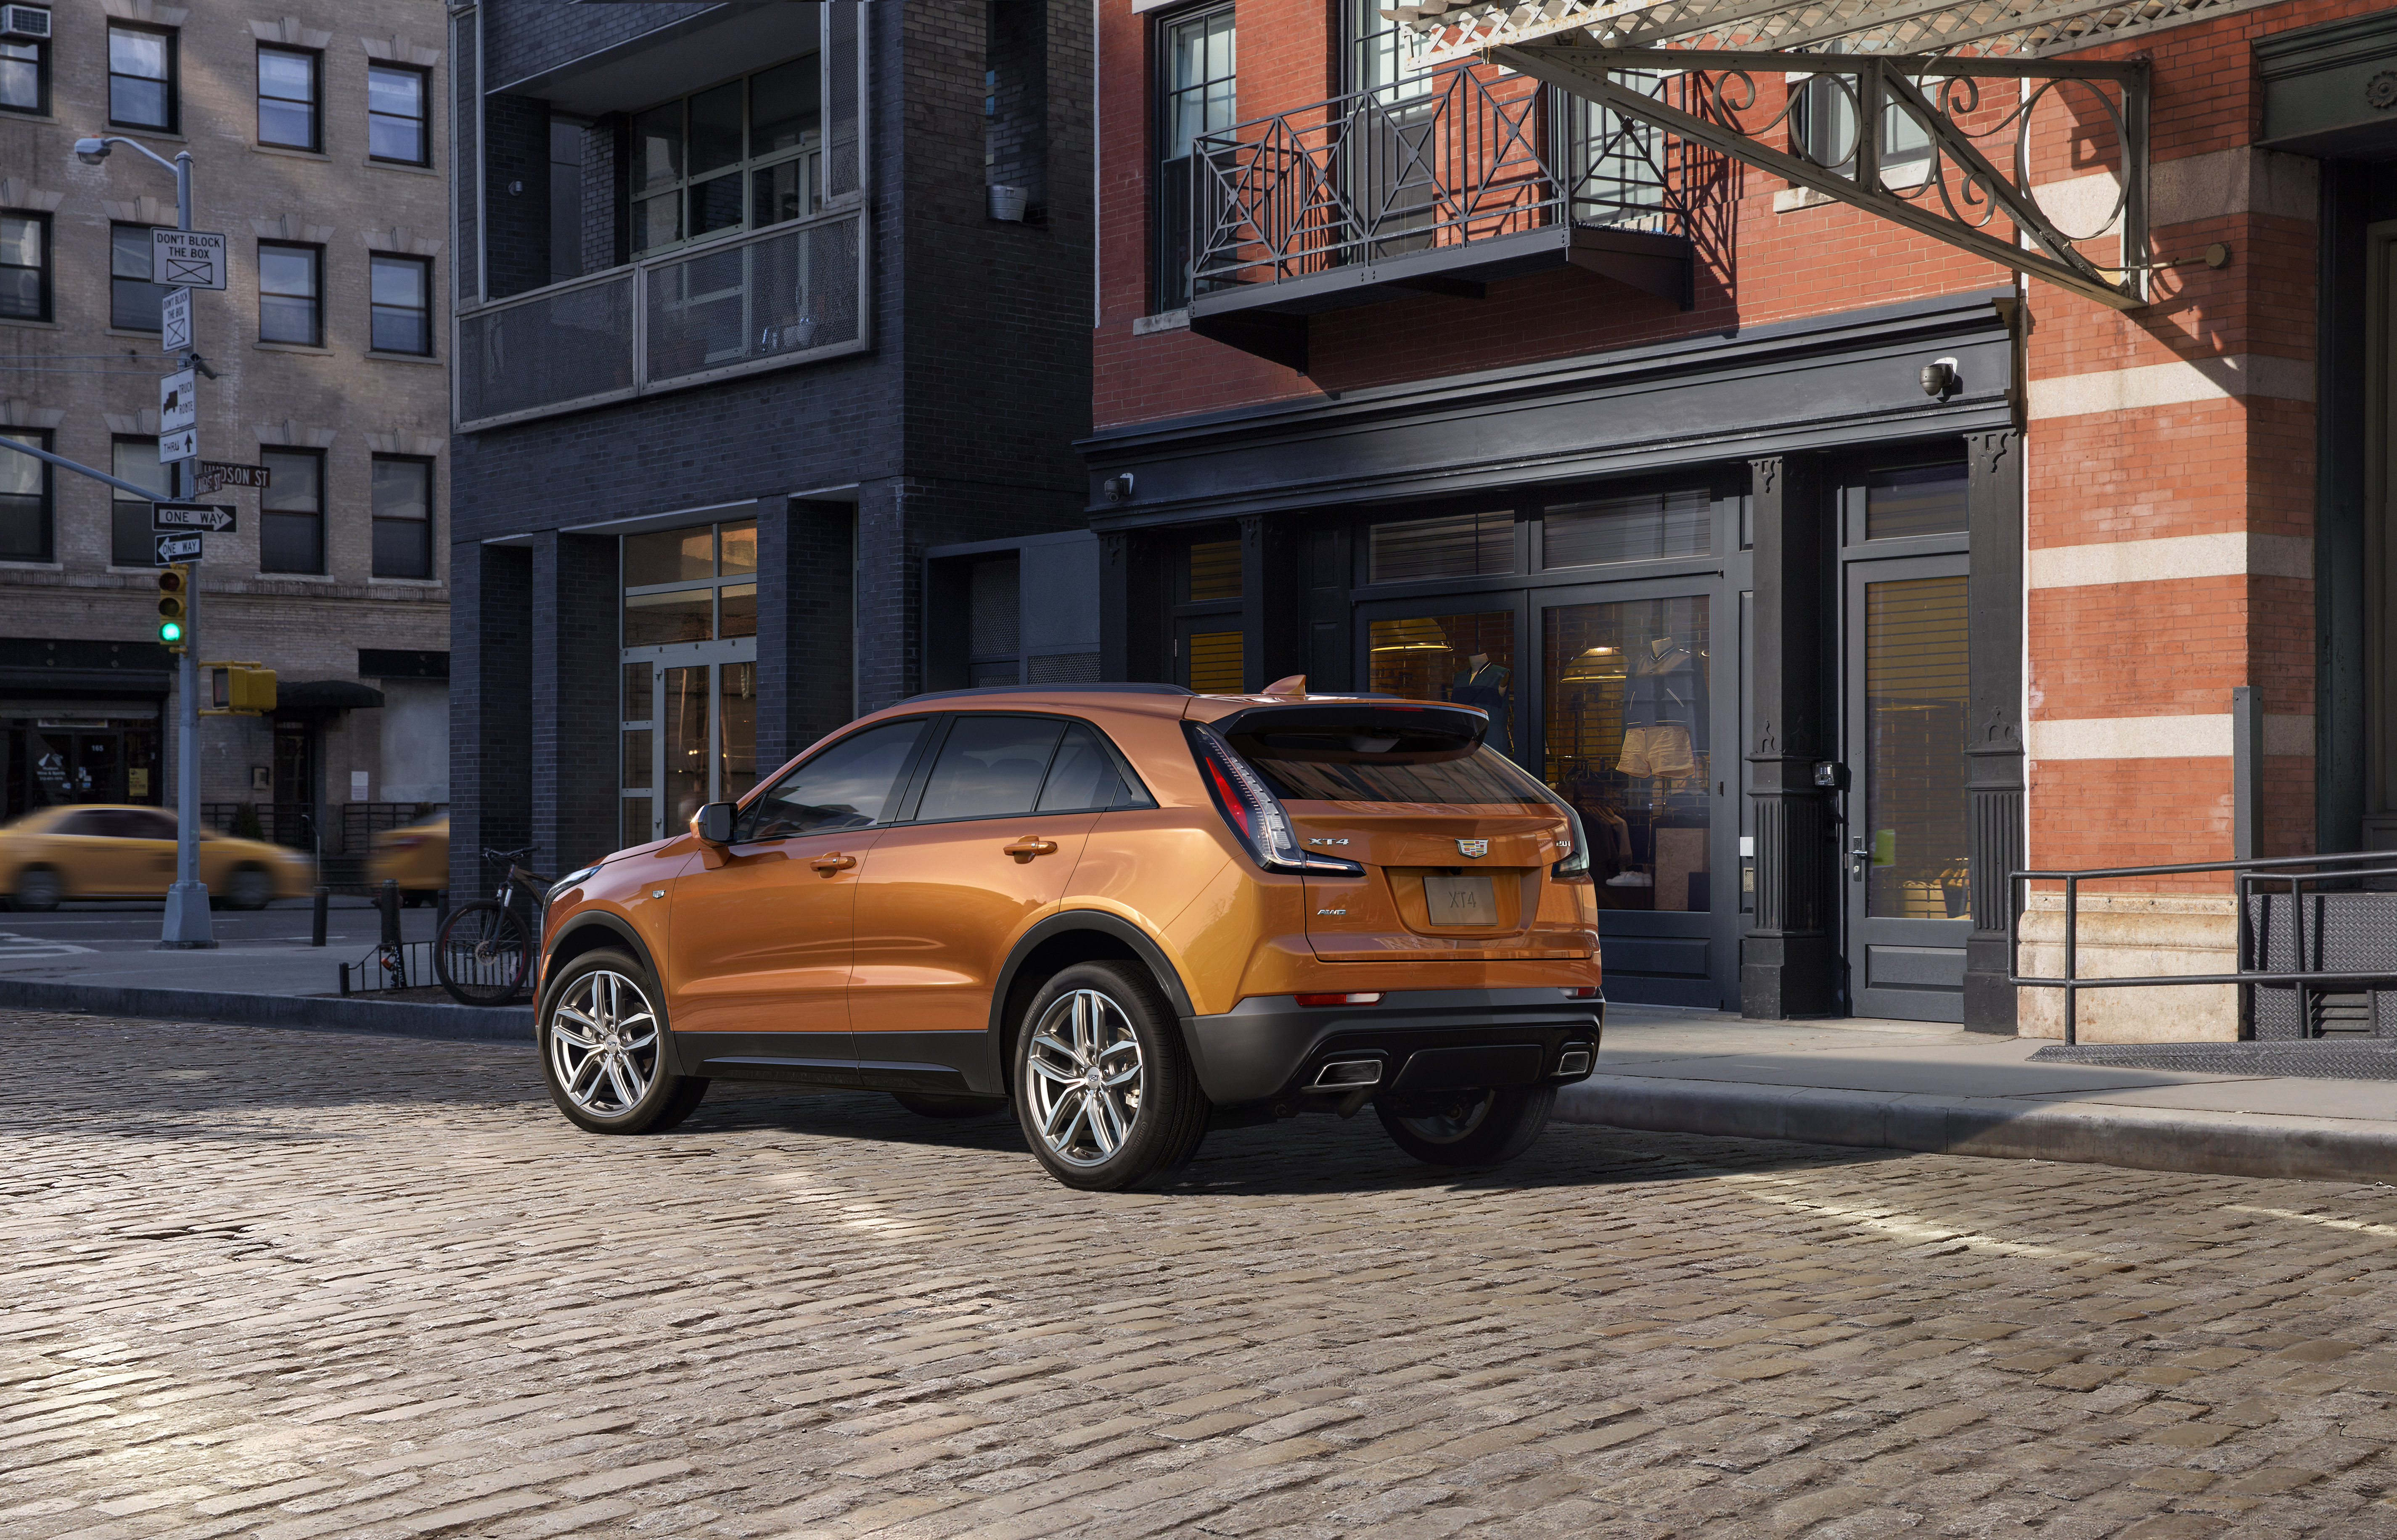 suv articles for com sale cadillac photos makes bestcarmag informations srx